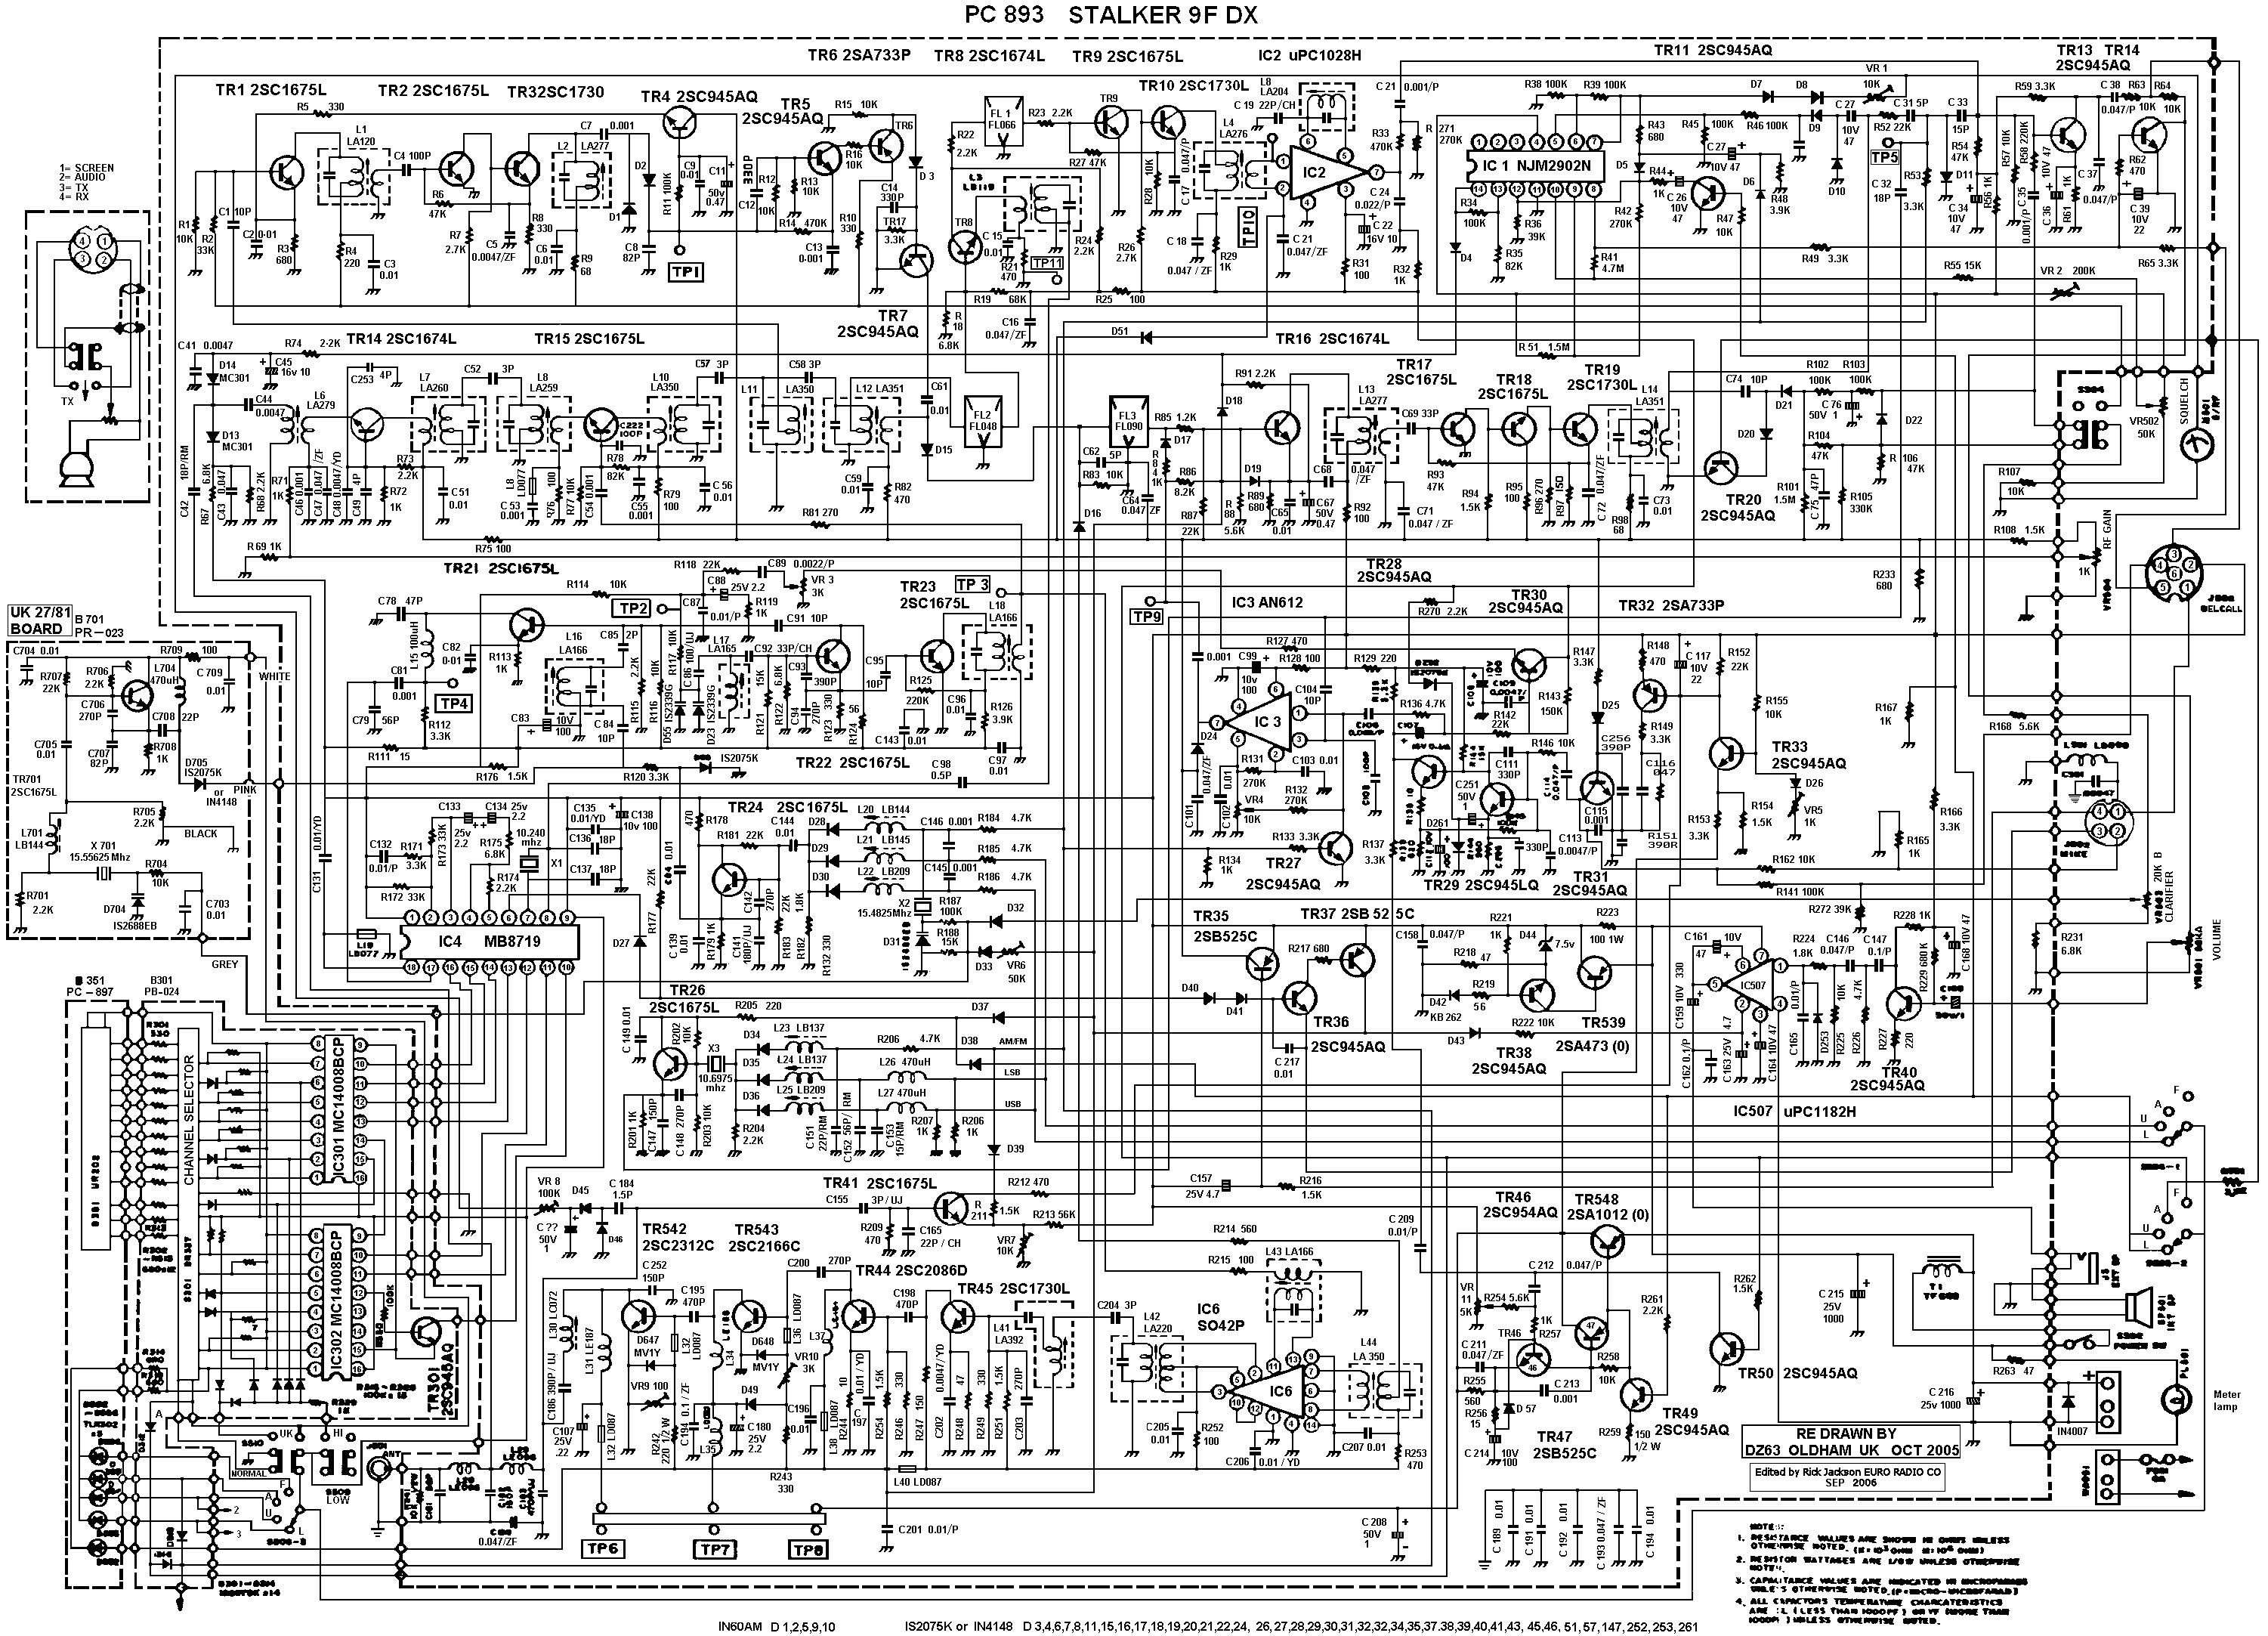 381f91856c8e3d5a8624ba977cca4625 image result for circuit diagram client_iot_平面 pinterest circuit diagram pdf at honlapkeszites.co